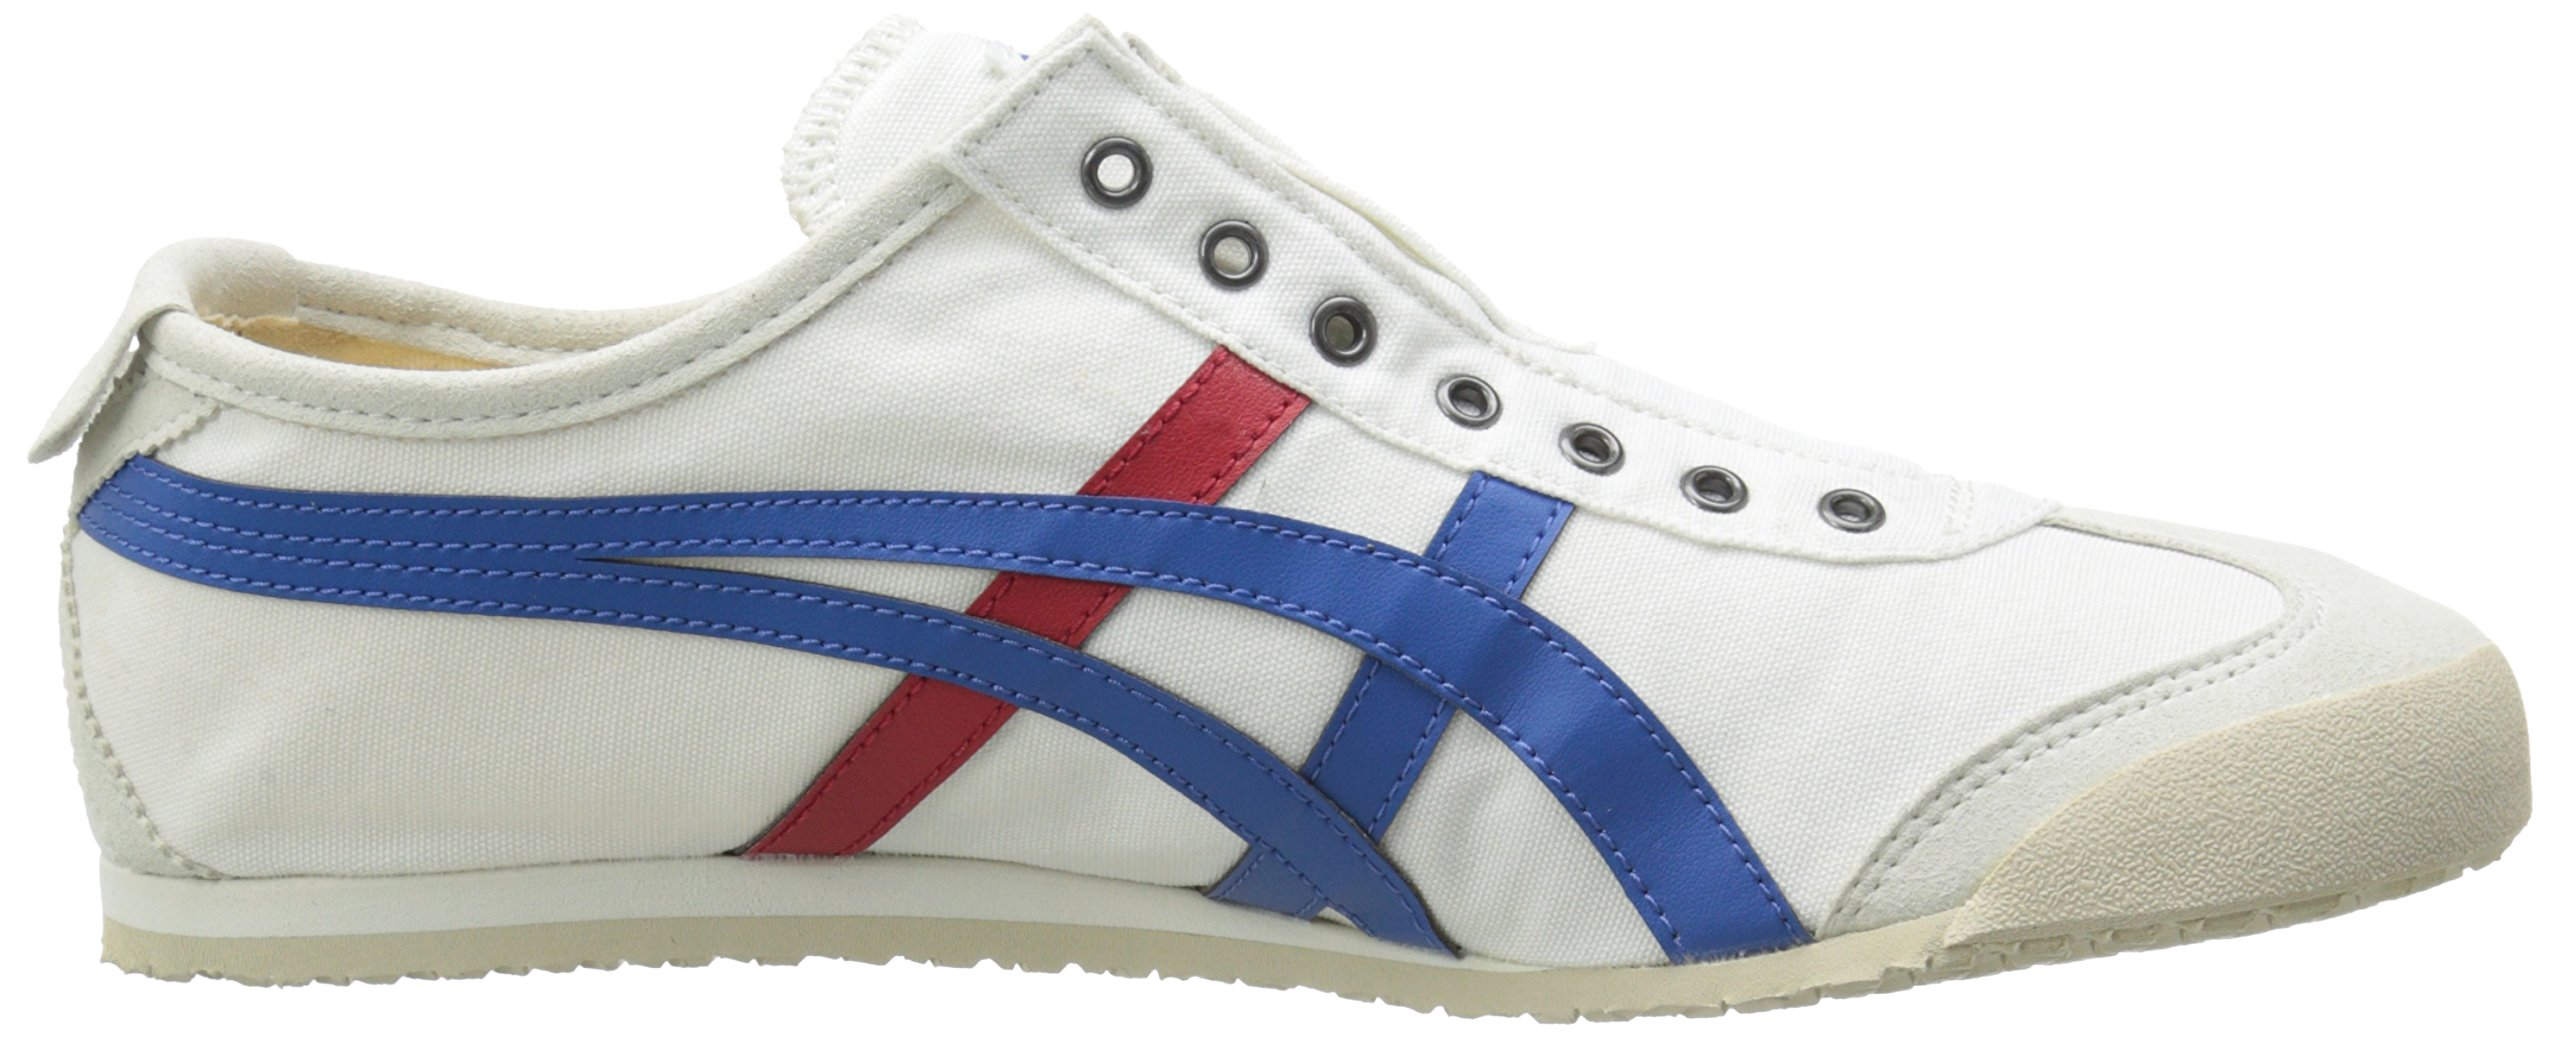 Onitsuka Tiger Unisex Mexico 66 Slip-on Shoes D3K0N, White/Tricolor, 9.5 M US by Onitsuka Tiger (Image #7)